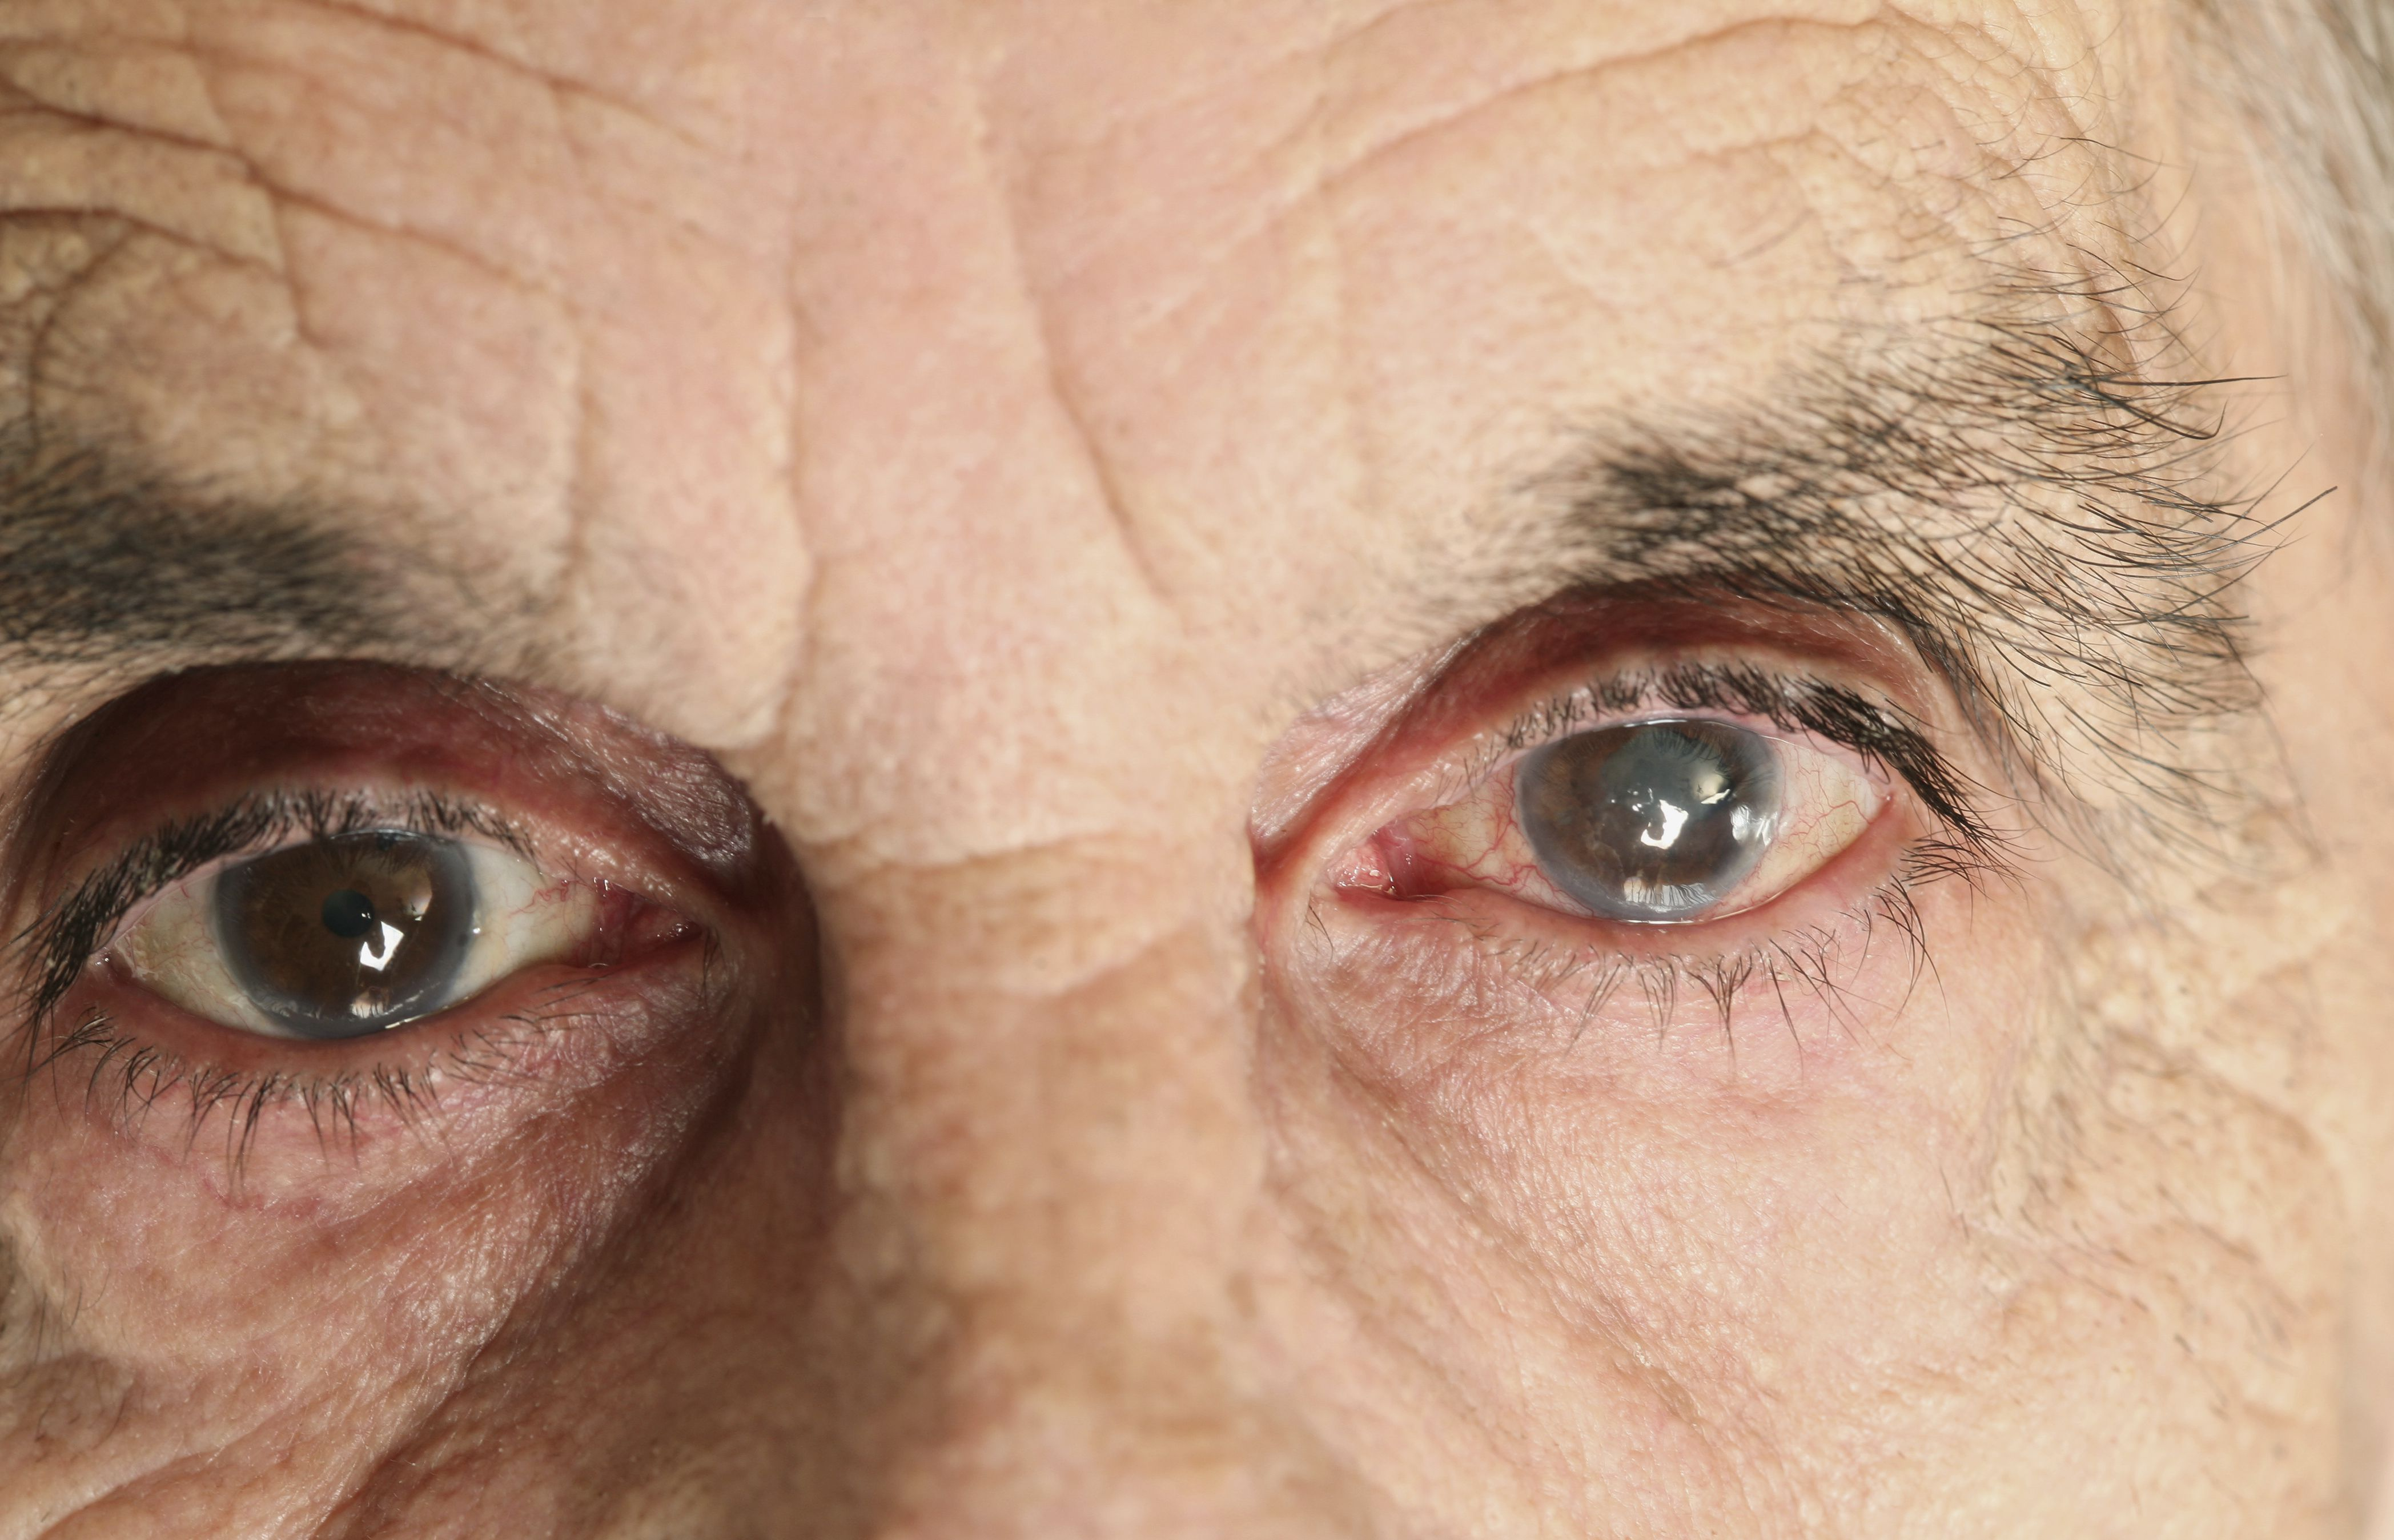 how to detect glaucoma in eye